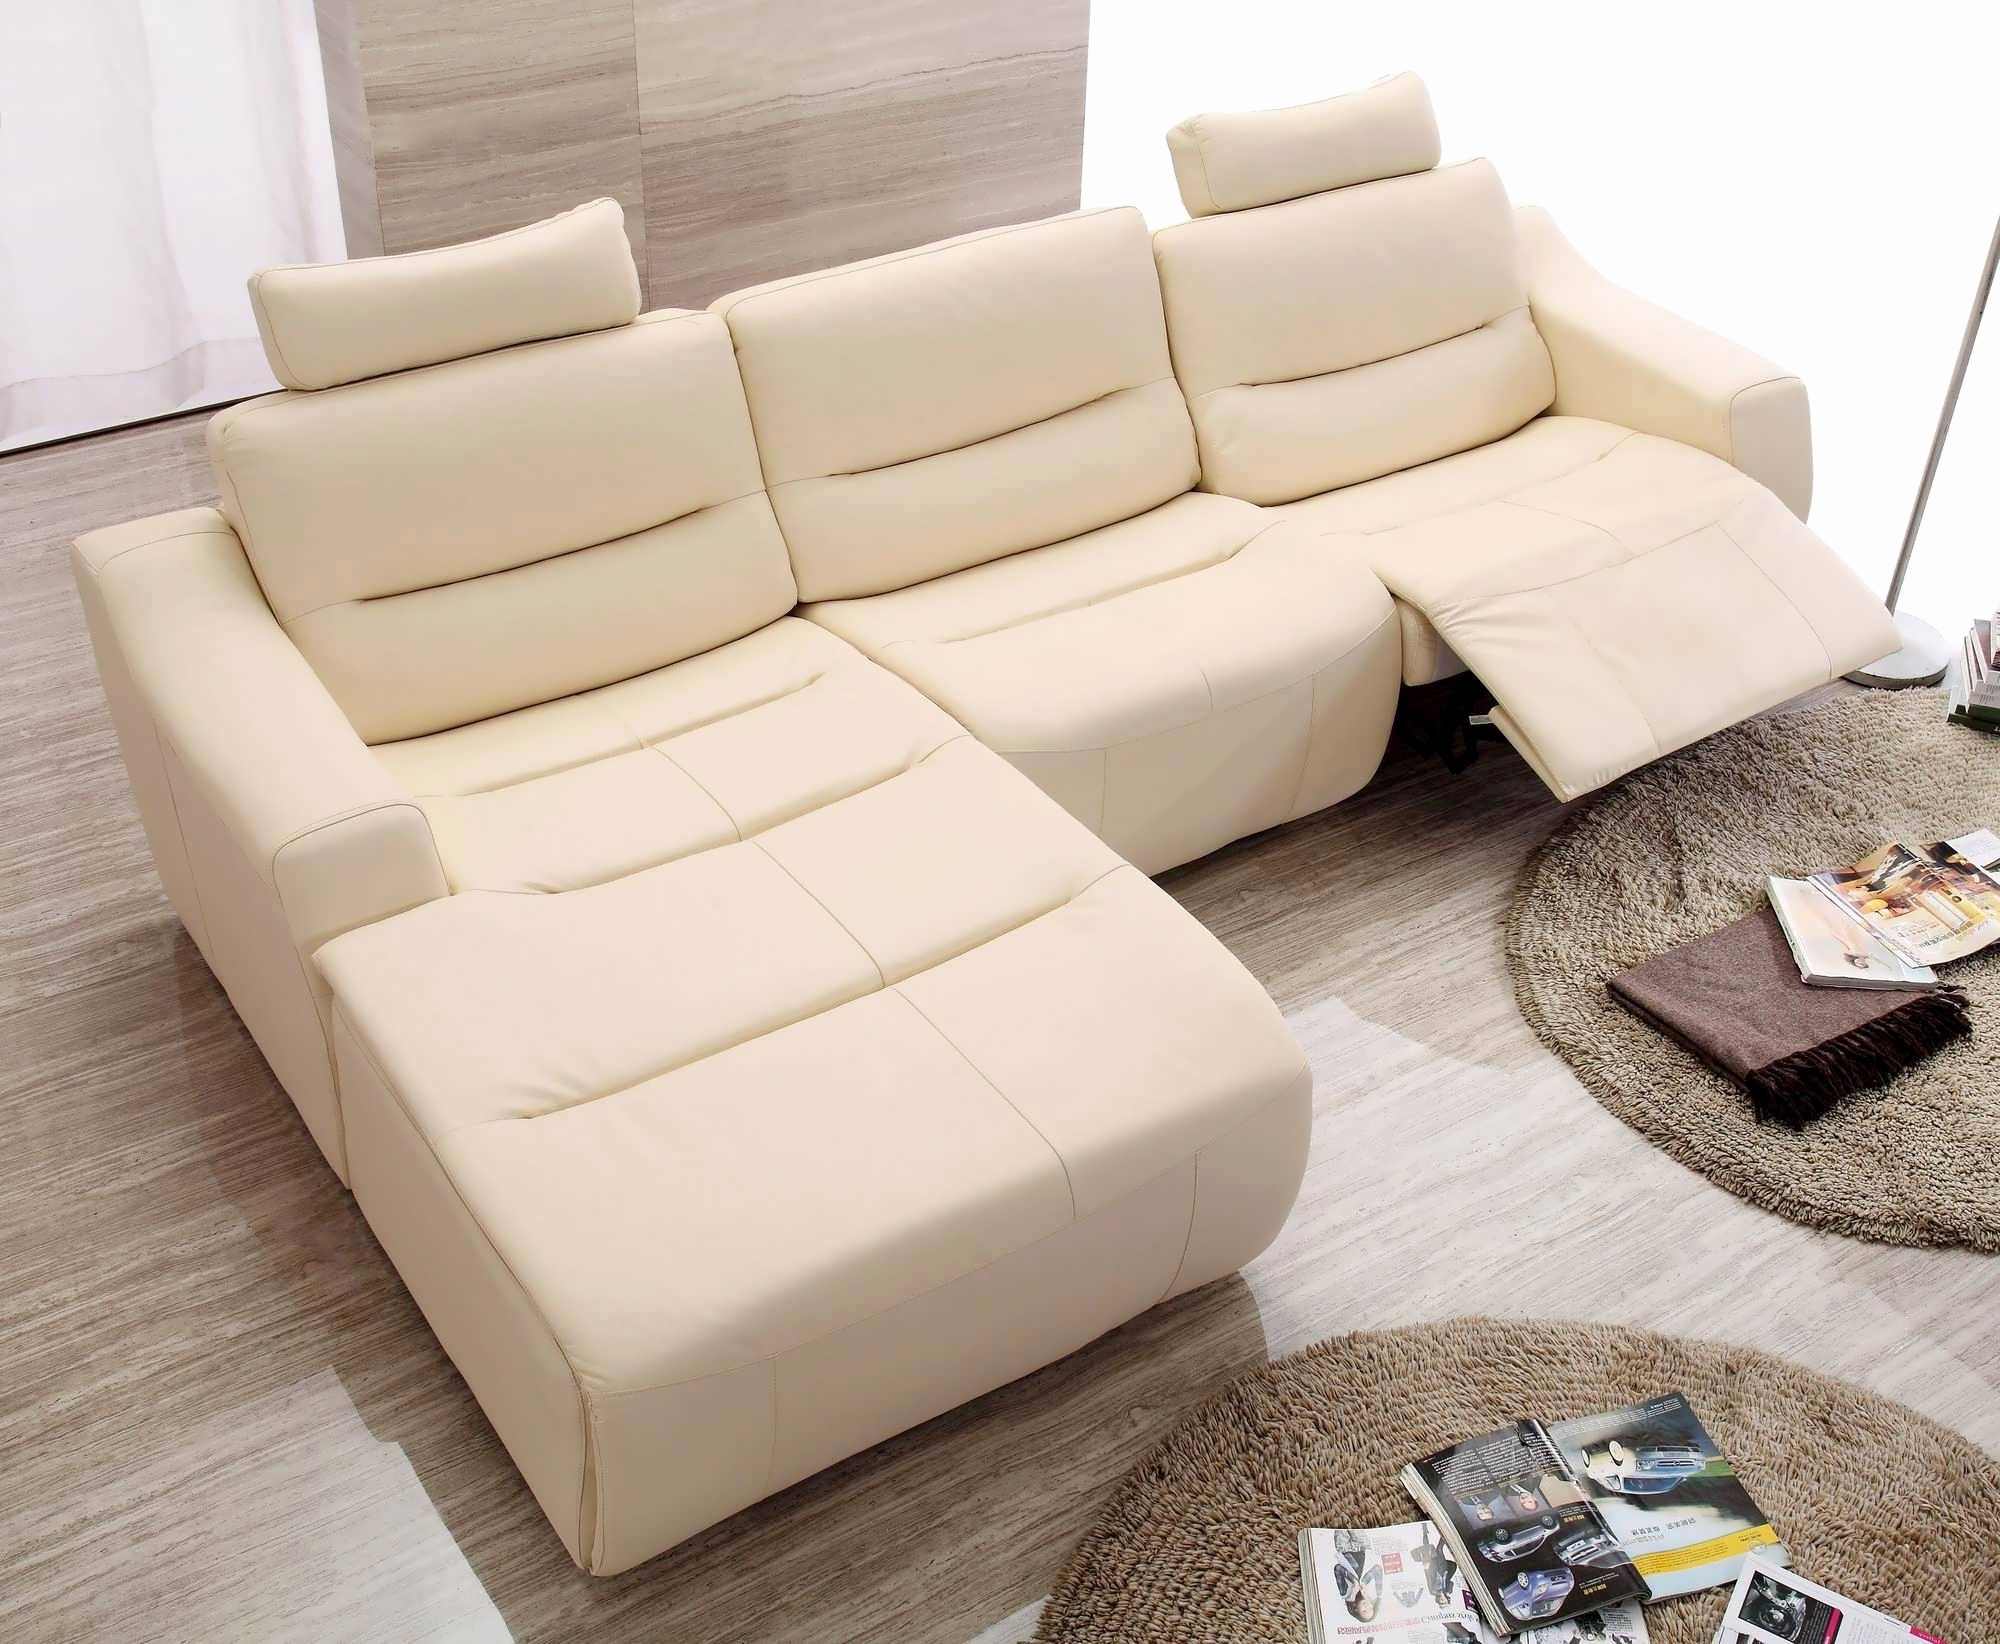 Most Popular Modern Reclining Leather Sofas For Sofa : Small Leather Sectional Sofa Elegant Recliners Chairs (Gallery 17 of 20)